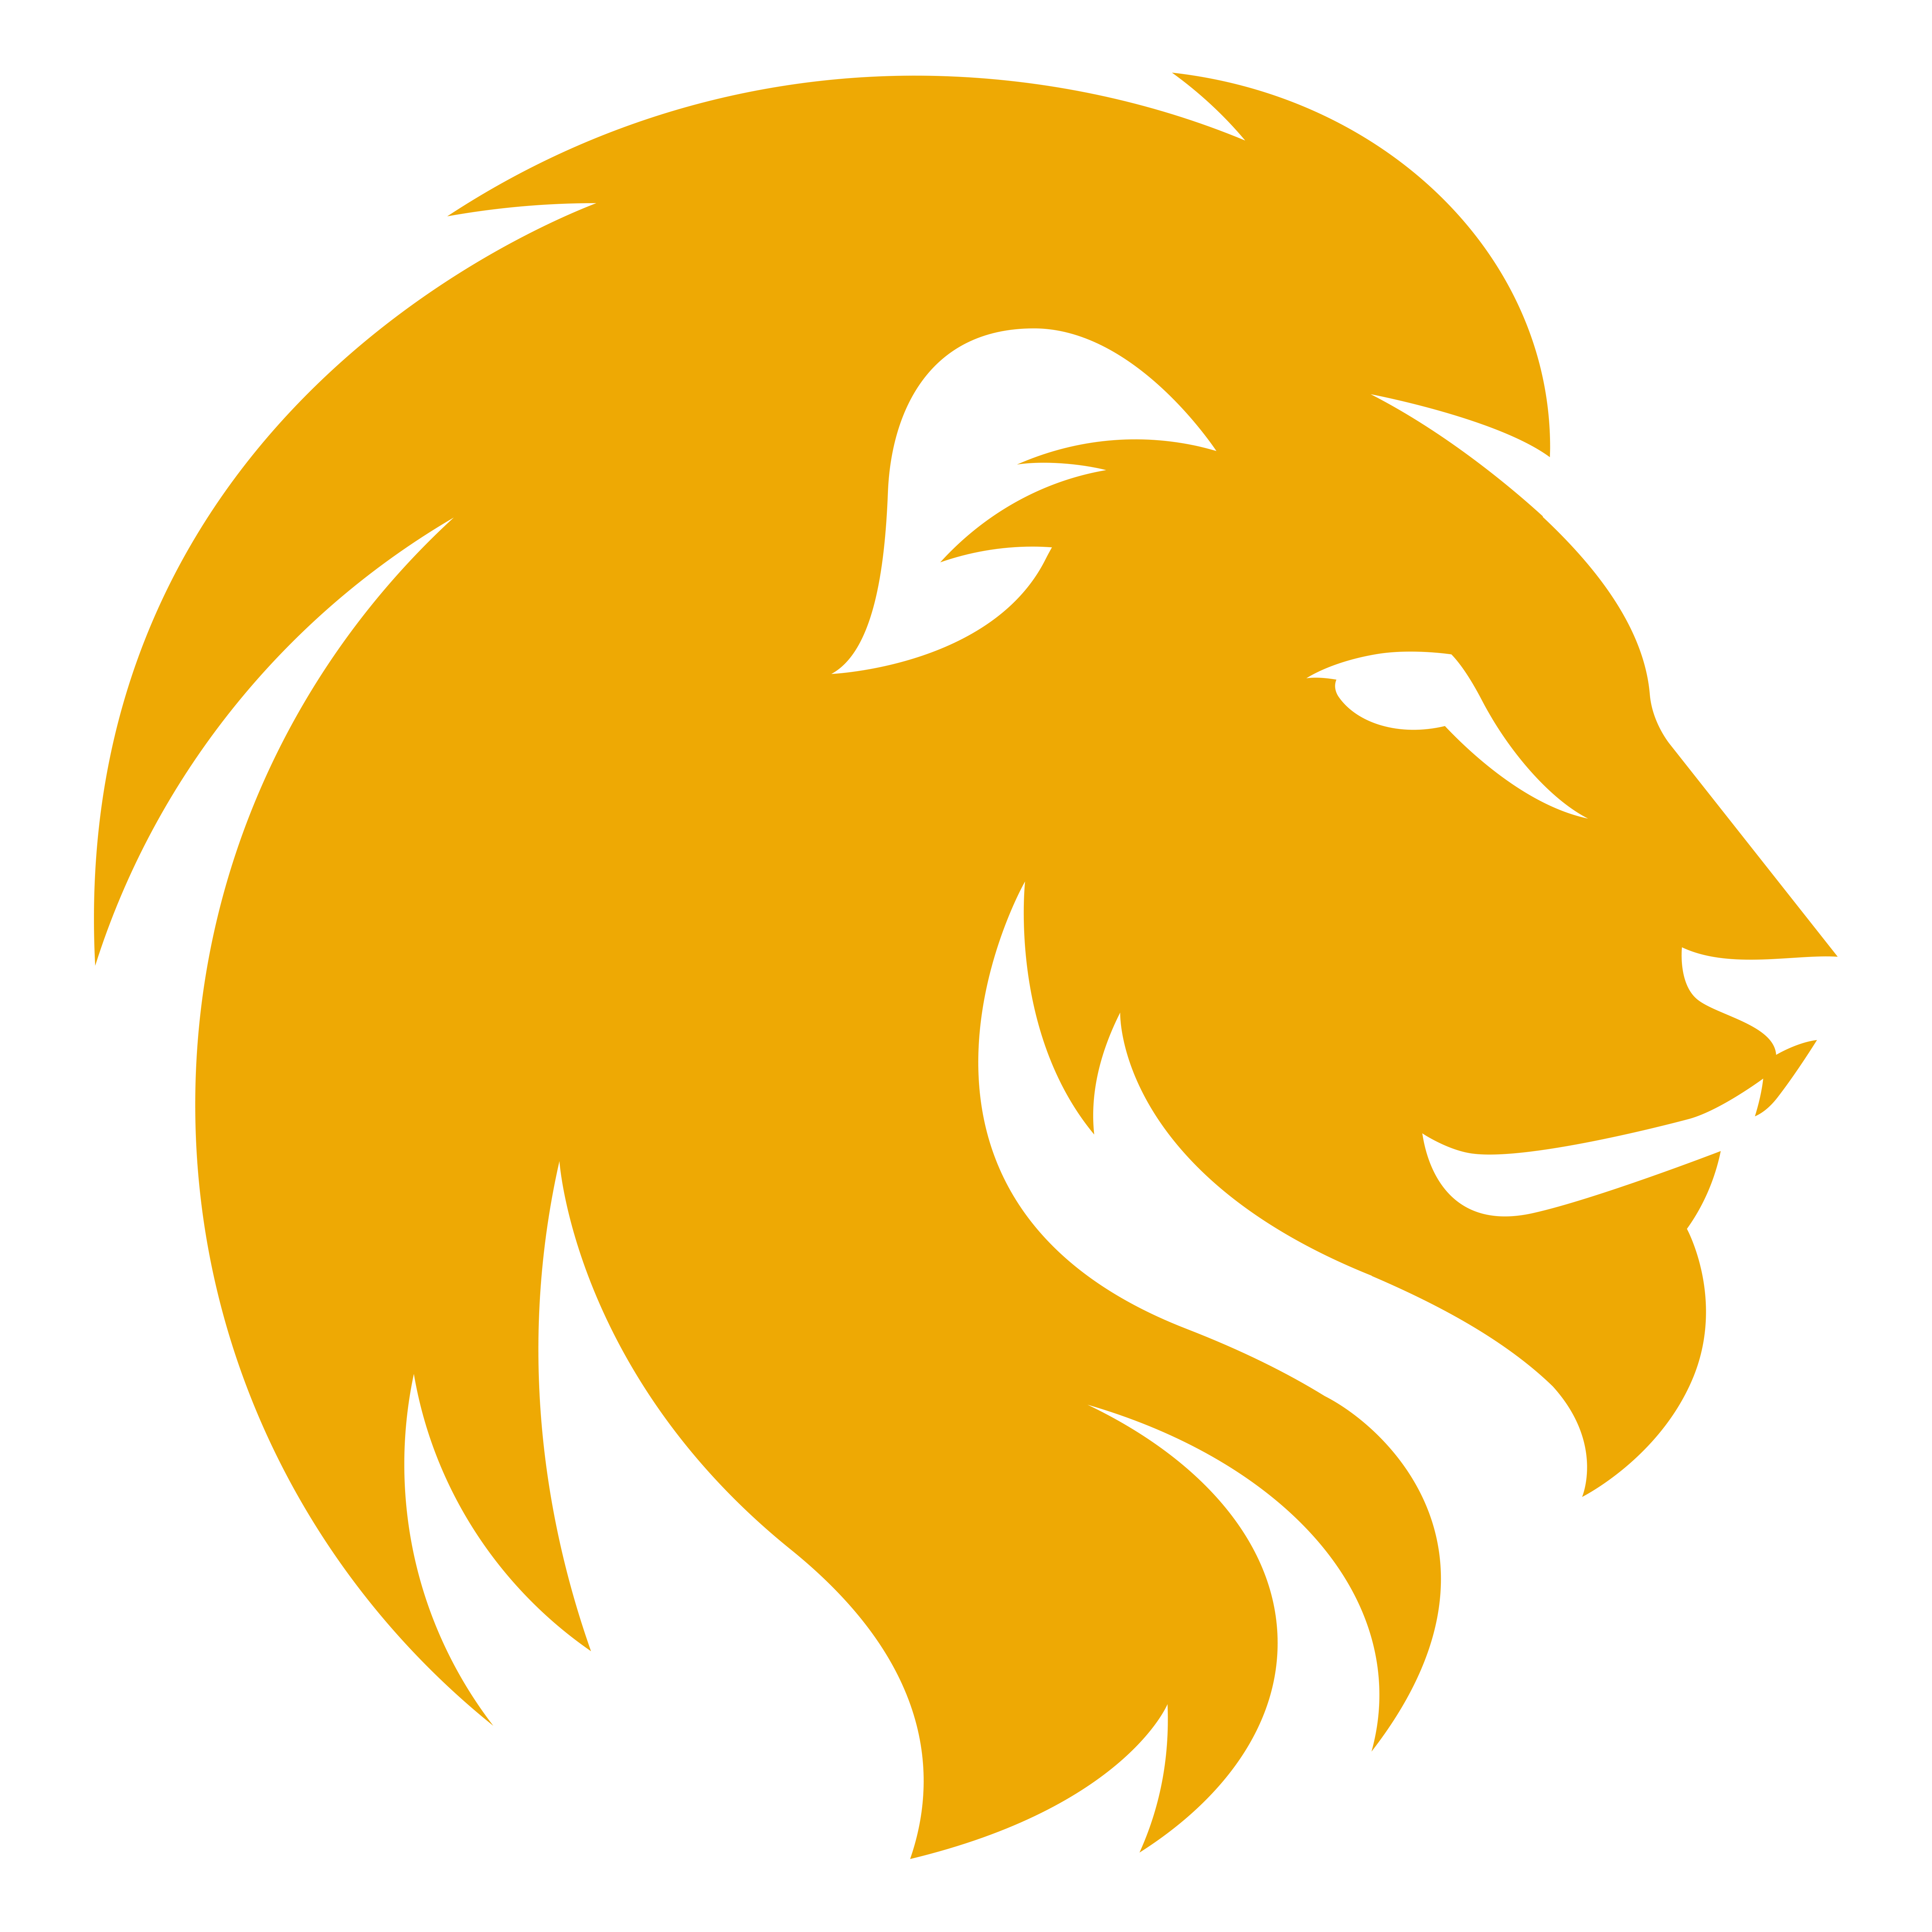 Yellow Lion Head Png image #37125